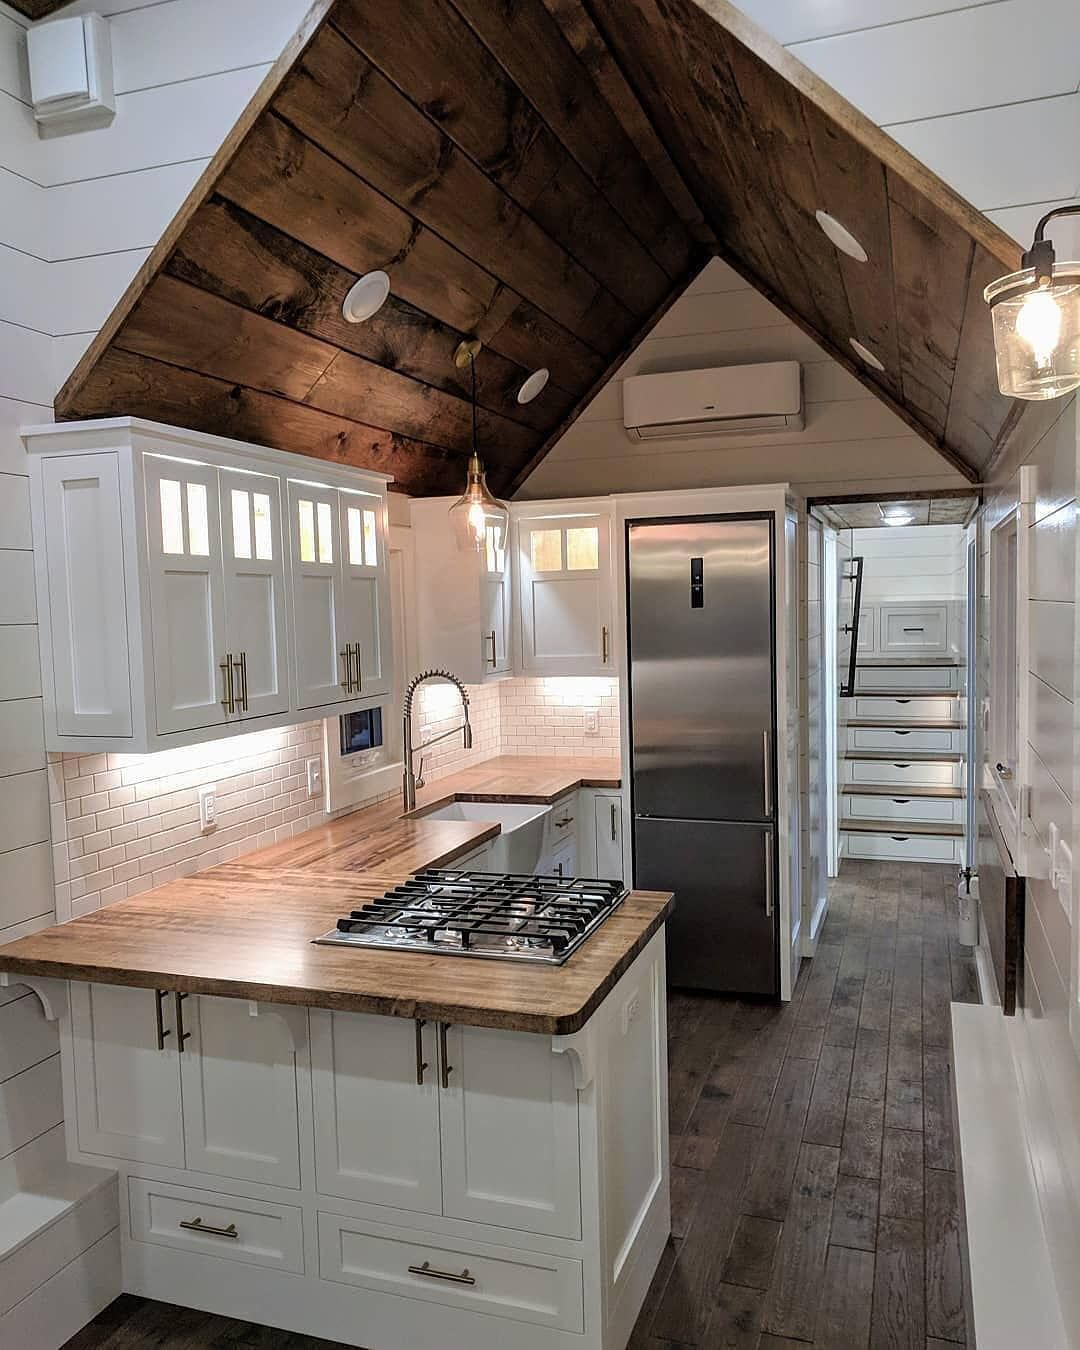 Tiny House Hunter On Instagram This Tiny Home Interior Is Gorgeous We Love The Vaulte Tiny House Kitchen Tiny House Interior Design Tiny House Hunters